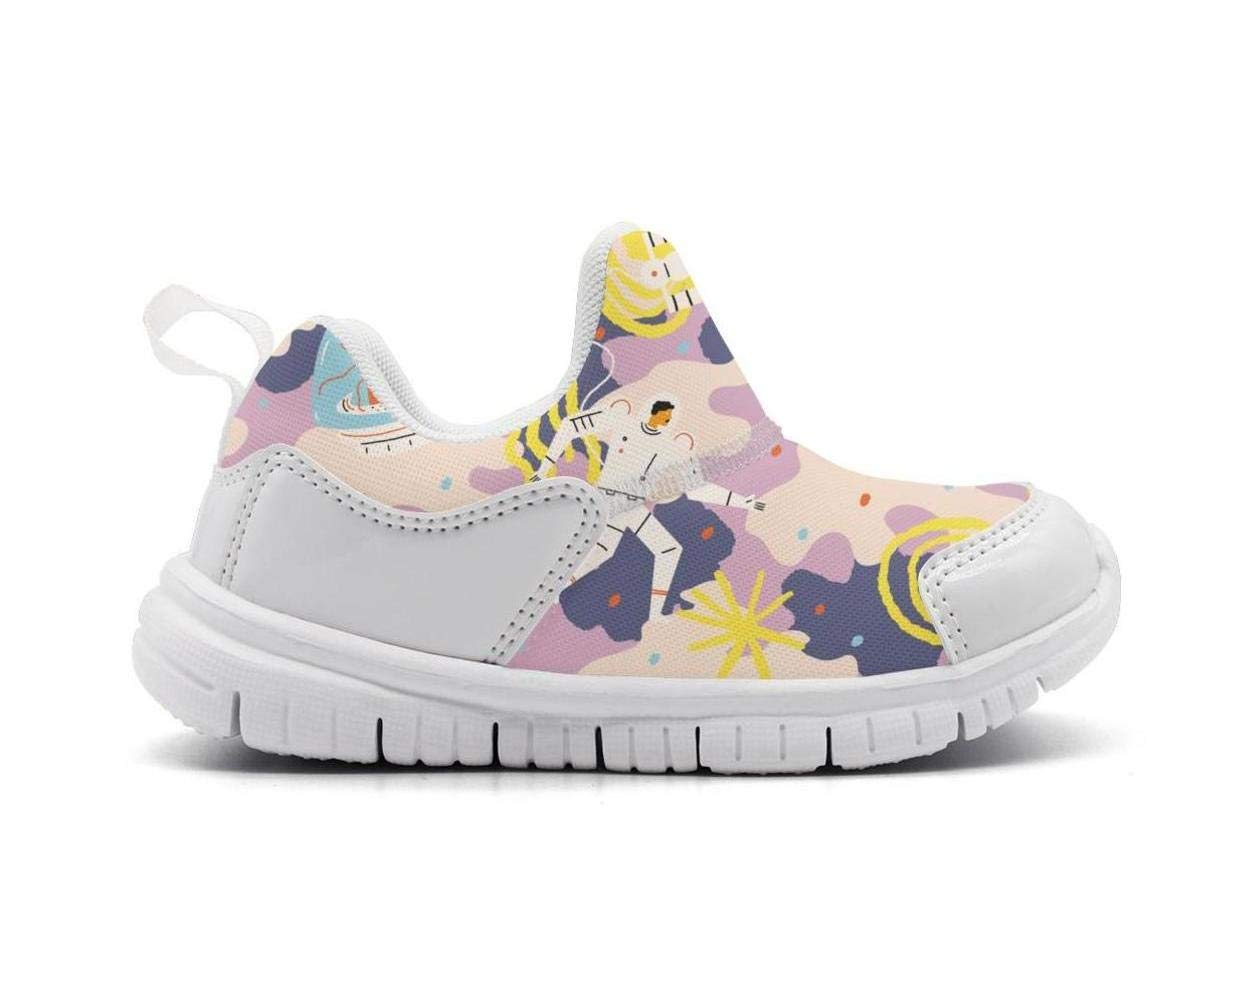 ONEYUAN Children Astronaut and Space Cat Kid Casual Lightweight Sport Shoes Sneakers Running Shoes